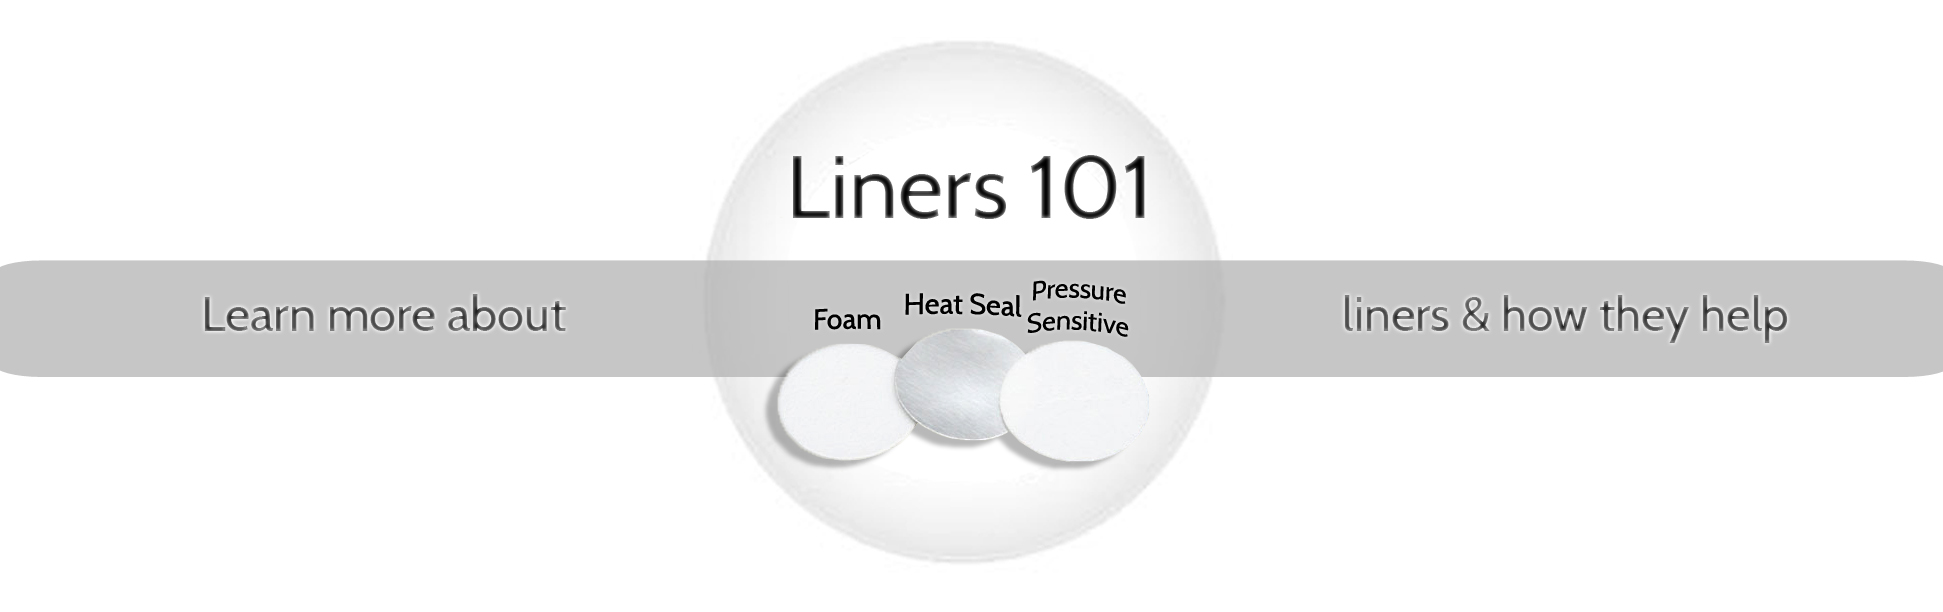 new-liners-101-banner-1-edited-13.jpg